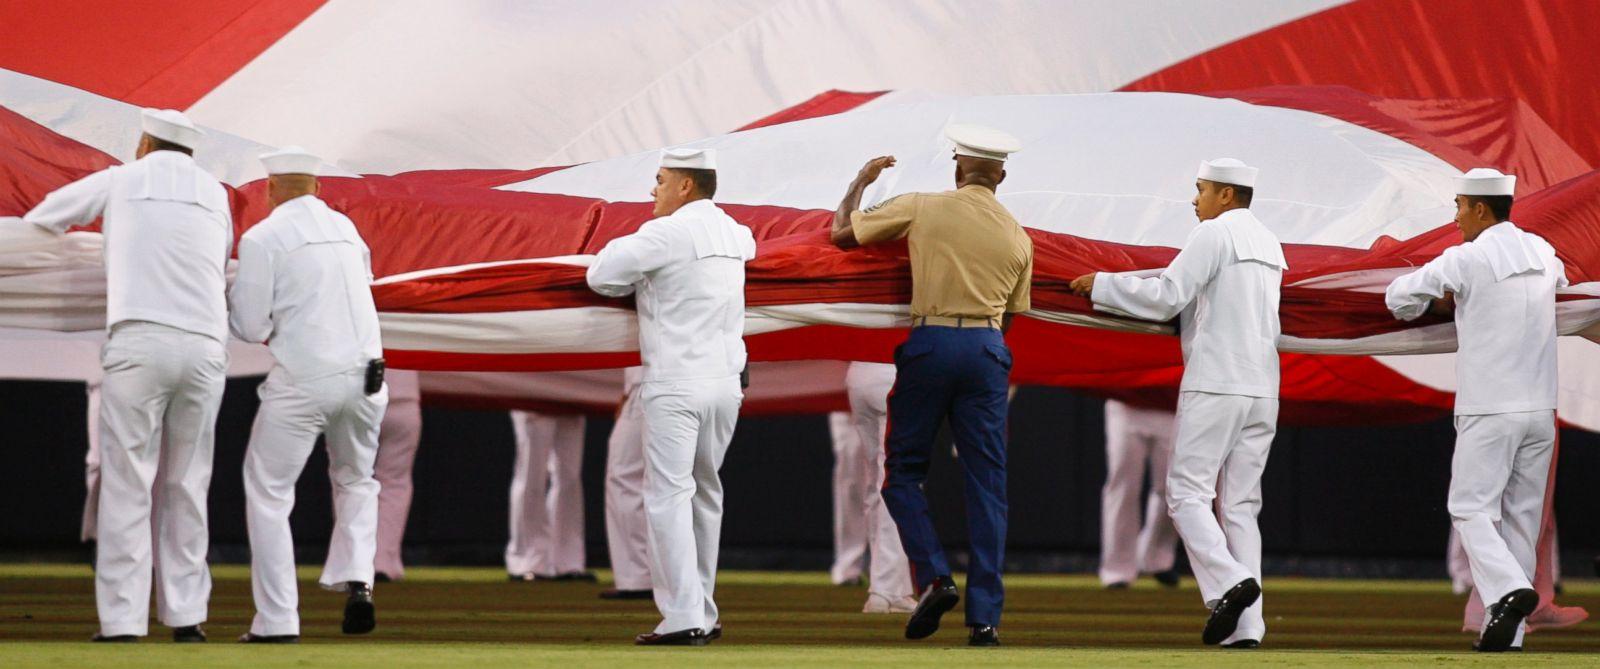 PHOTO U.S. military service members unfurl an American flag during a ceremony held to commemorate the anniversary of the 9/11 attacks before a baseball game between the the San Diego Padres and the Colorado Rockies Friday, Sept. 11, 2009 in San Diego.